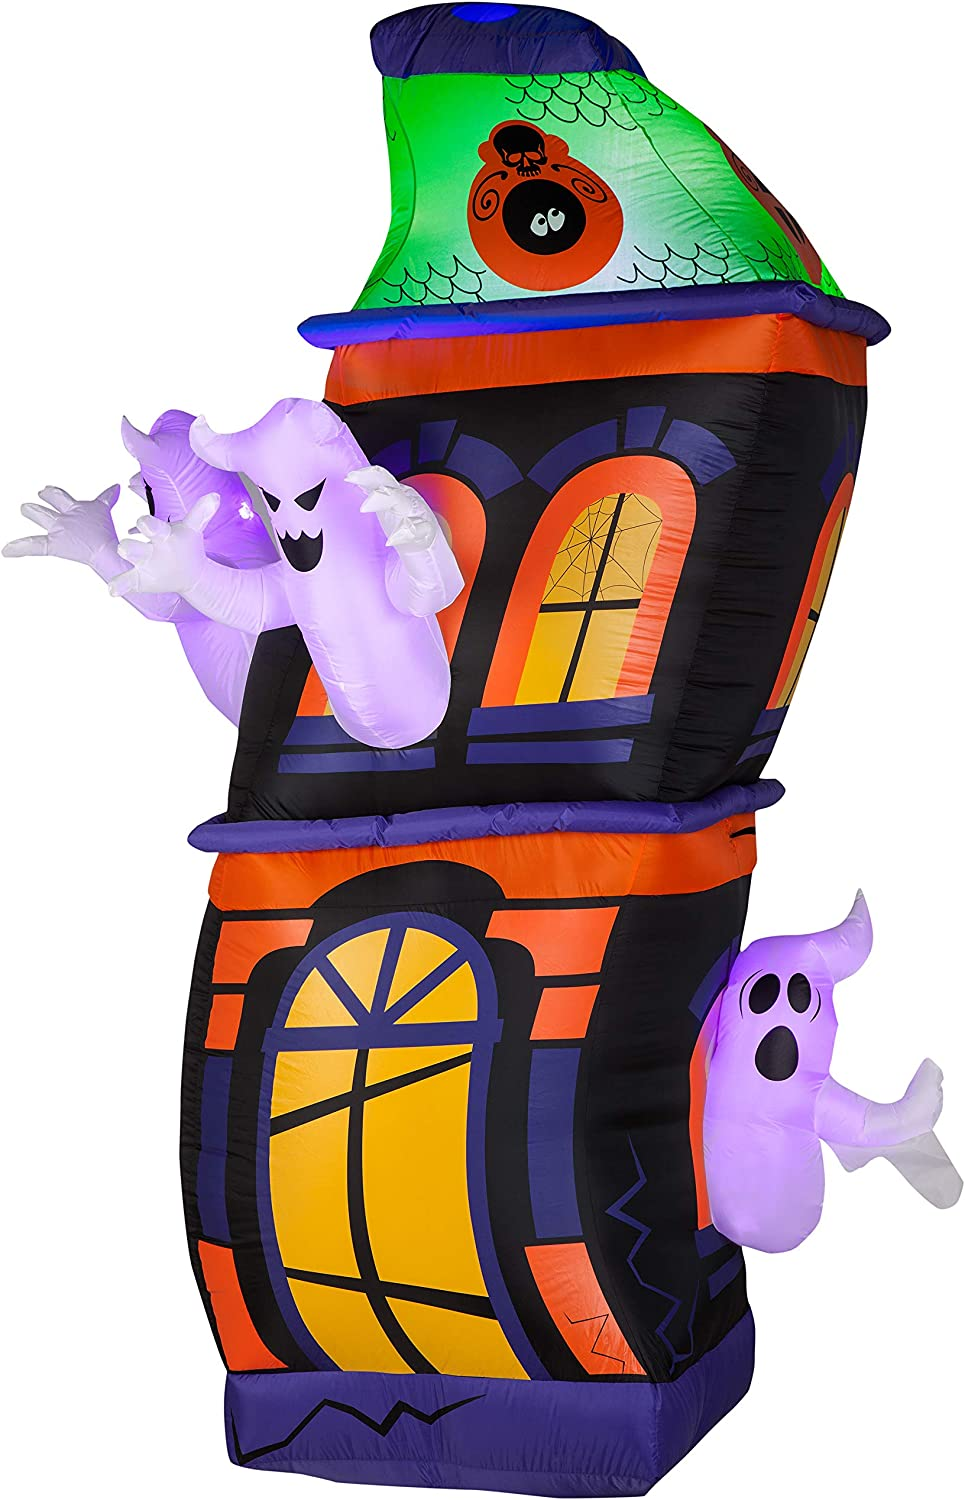 Ghost in a Haunted House Outdoor Inflatables